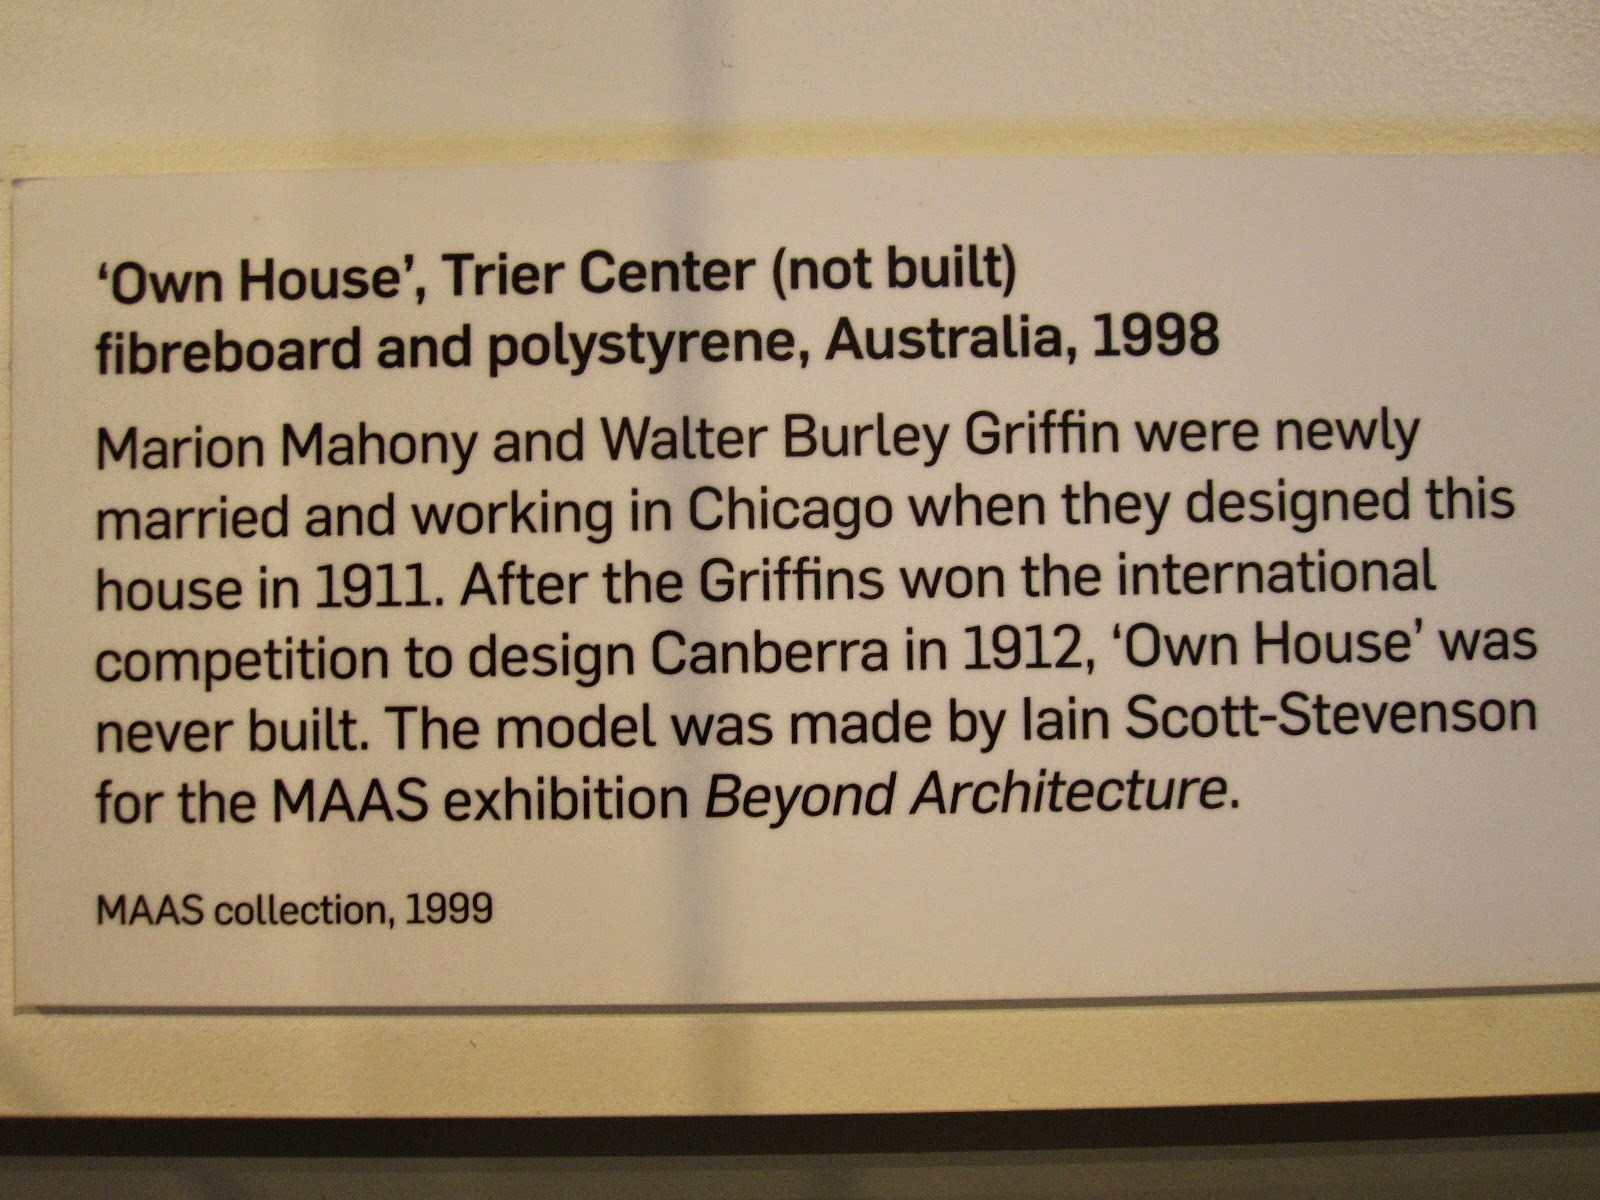 Exhibition sign for the model of 'Own house', designed by Walter Burley and Marion Mahony Griffin.